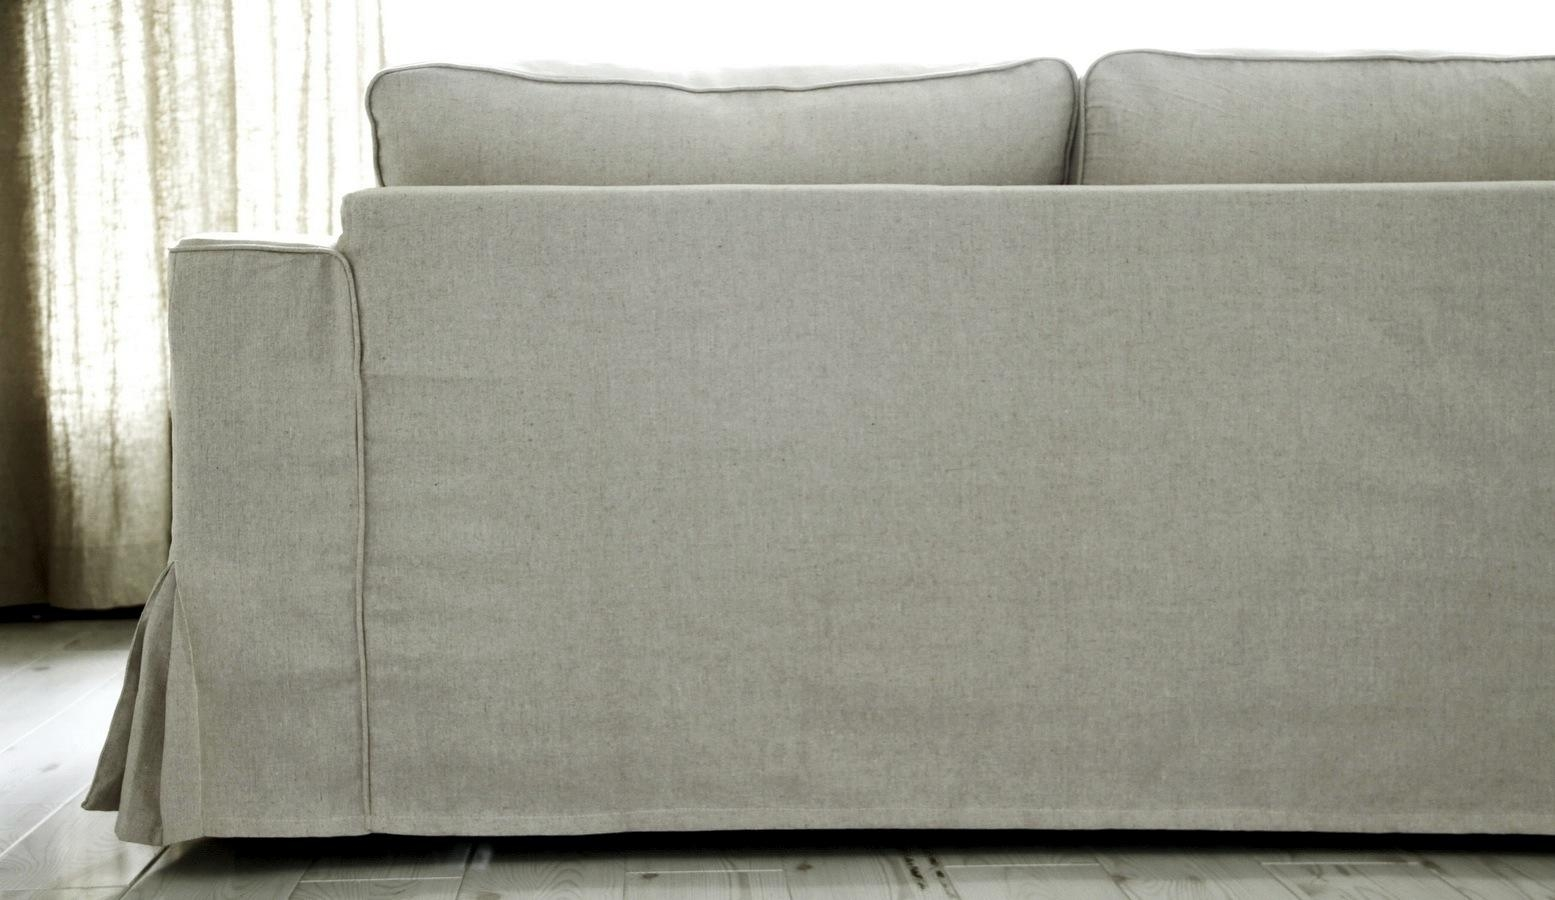 Wonderful Couch Covers Ikea Ektorp D For Design Decorating With Regard To Sofas With Removable Covers (View 14 of 20)